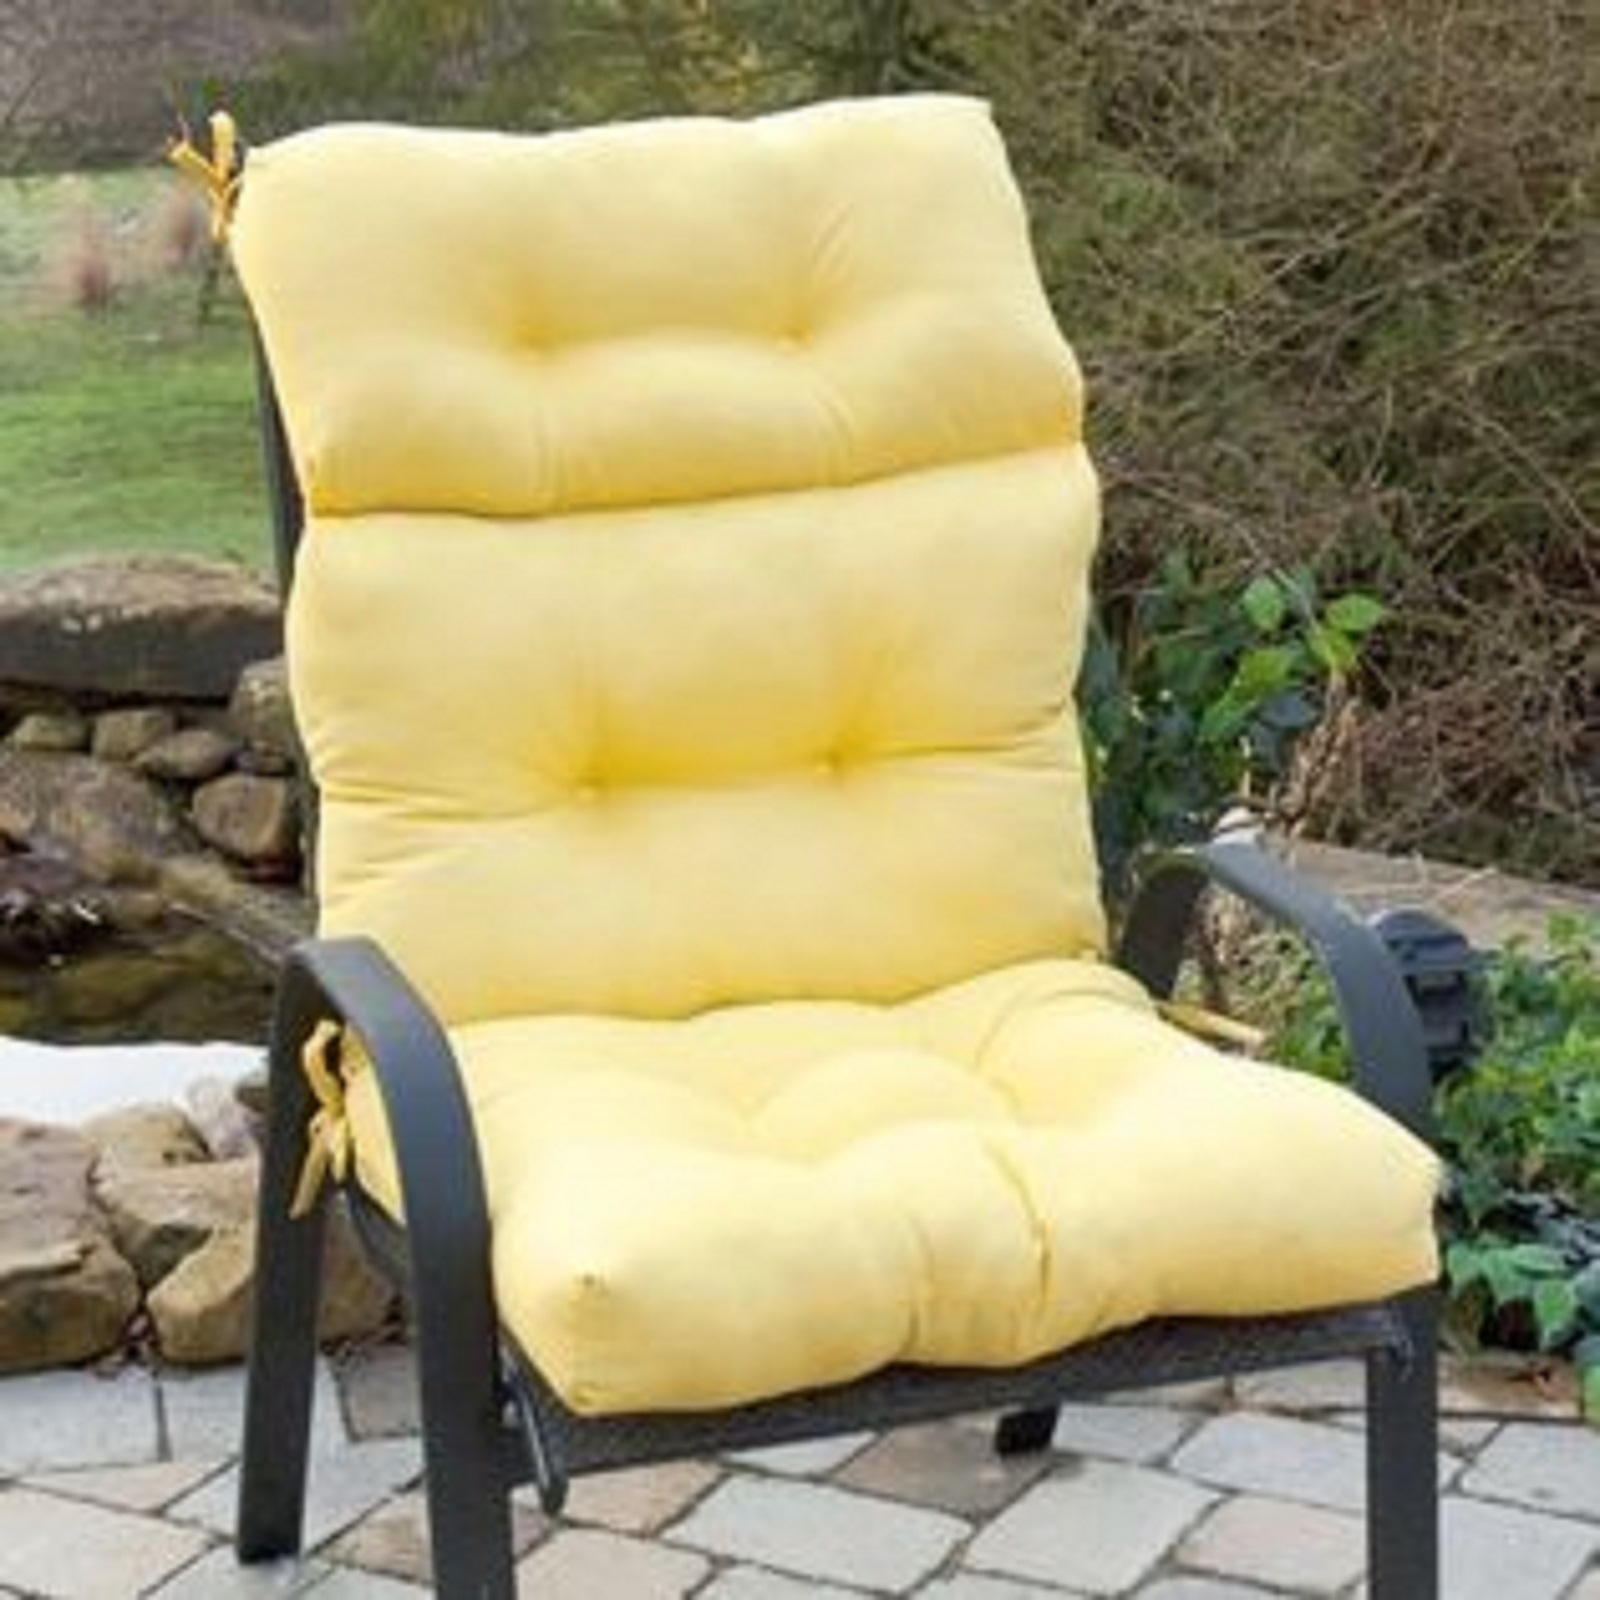 Yellow Patio Cushions Cushions Decoration With High Back Chair Cushions Outdoor Furniture How To Clean High Back Chair Cushions Outdoor Furniture